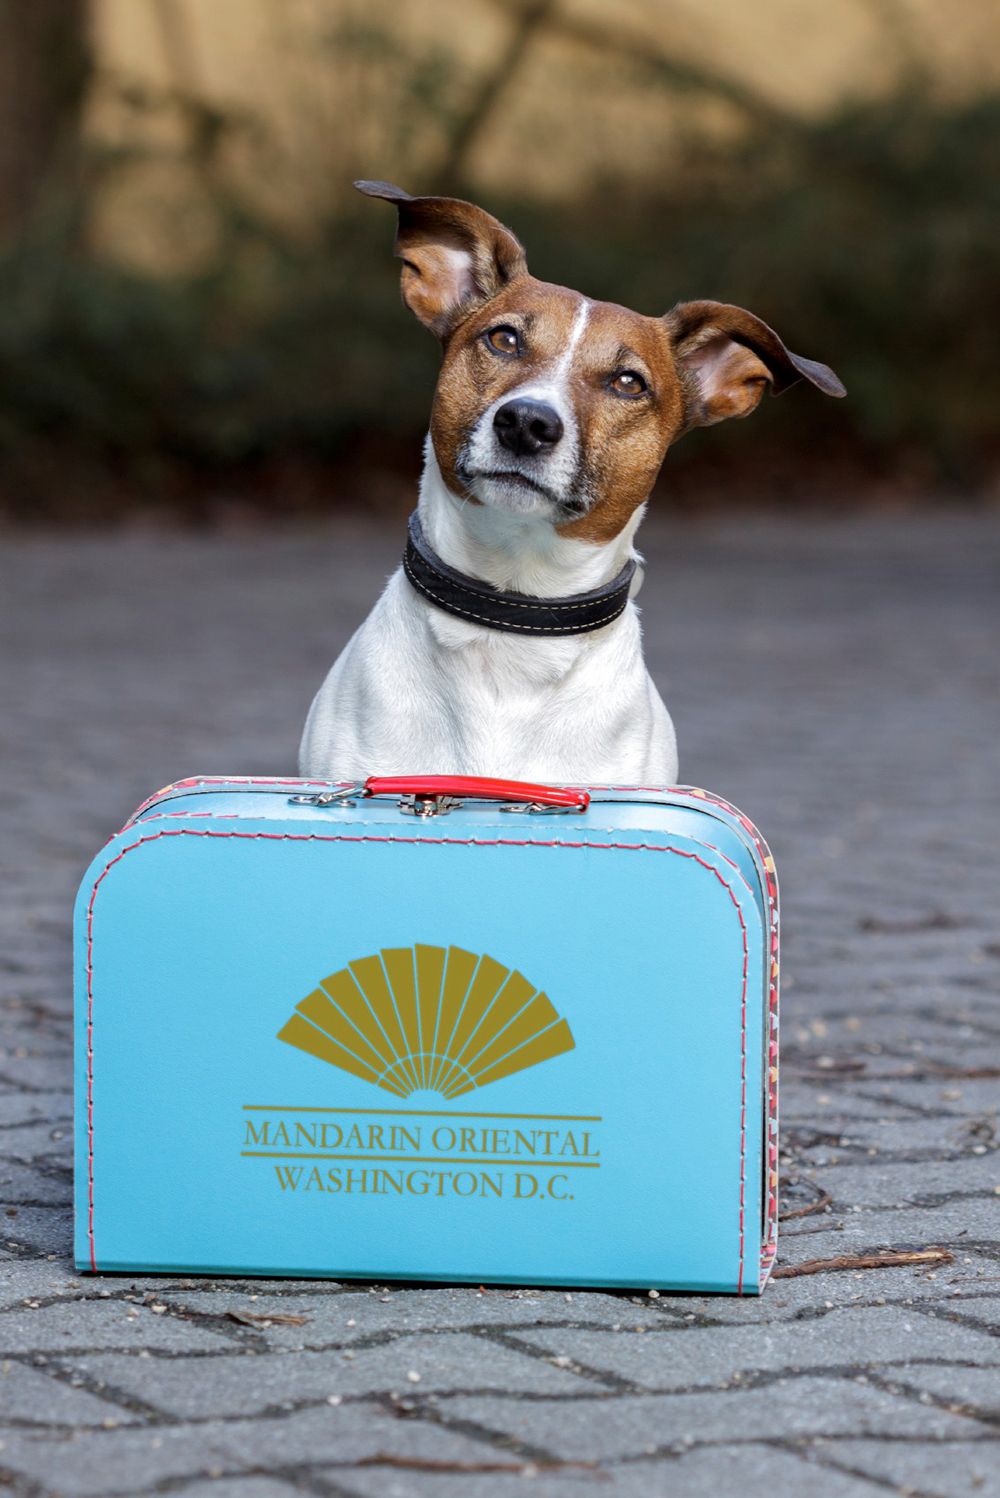 During the Chinese Lunar Year of the Earth Dog, Mandarin Oriental, Washington DC is treating four-legged guests and their owners to exclusive luxury experiences.